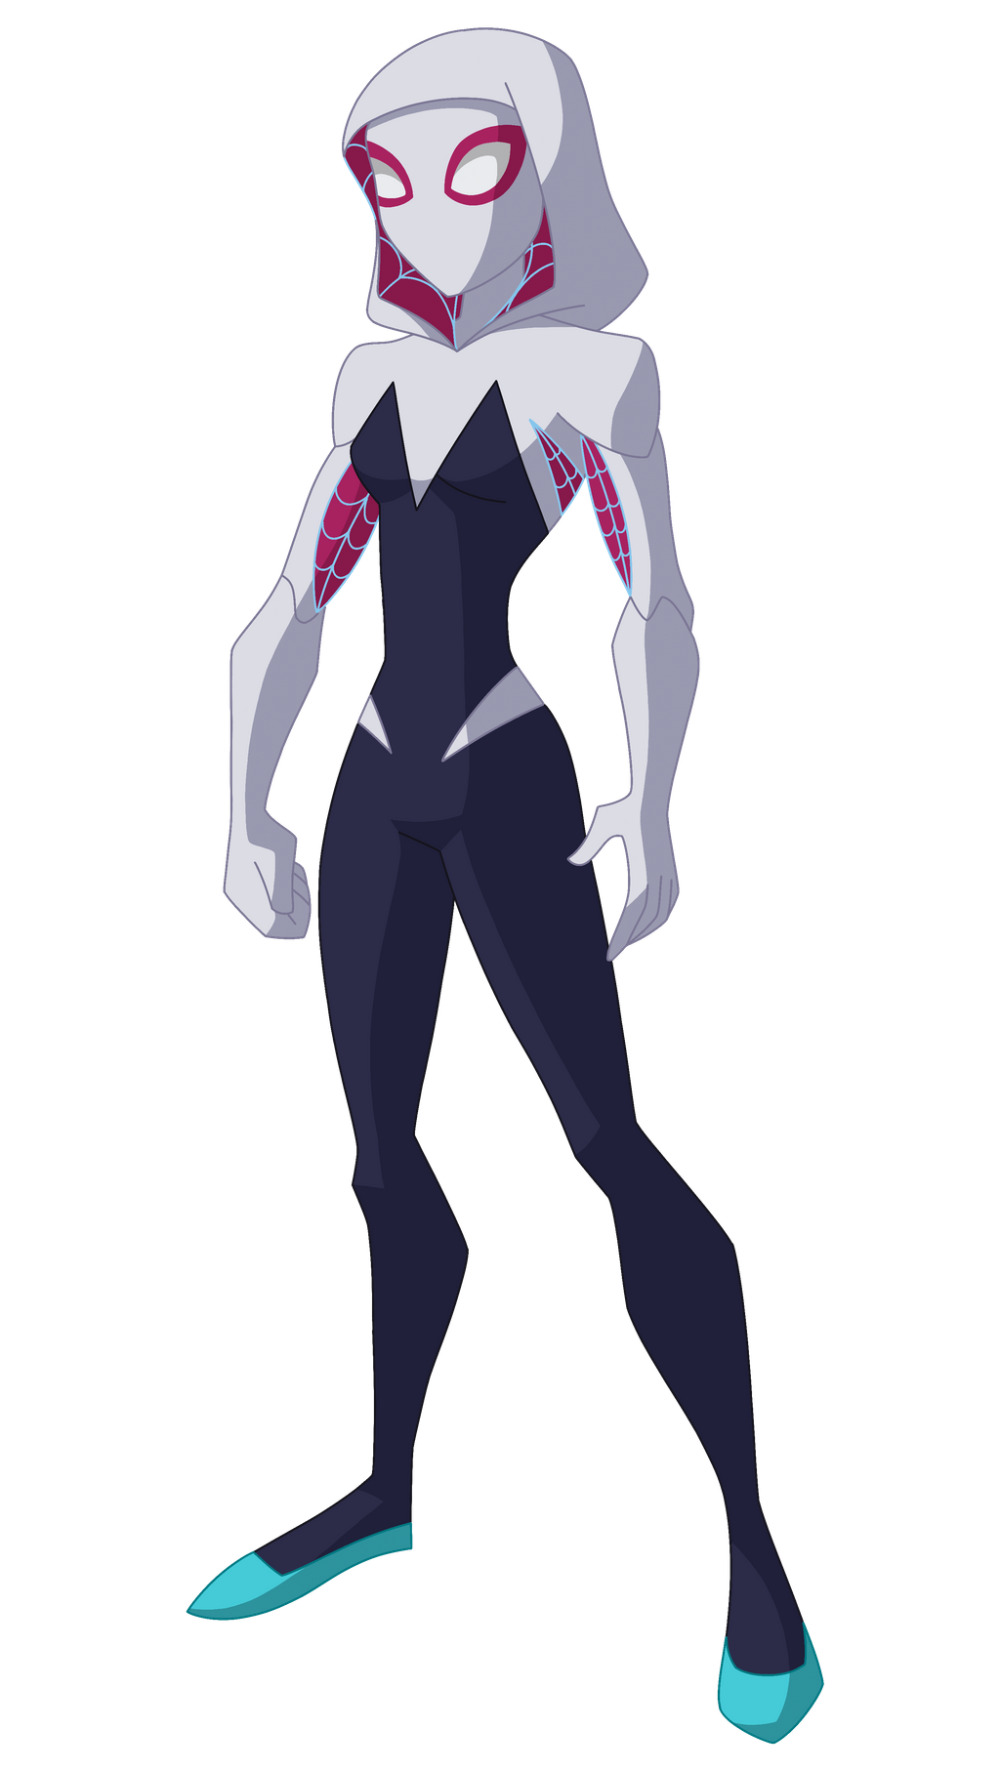 Gwendolyne Maxine Stacy Aka Spider Gwen Daughter Of George Stacy Helen Stacy Croquis Anime Heroines